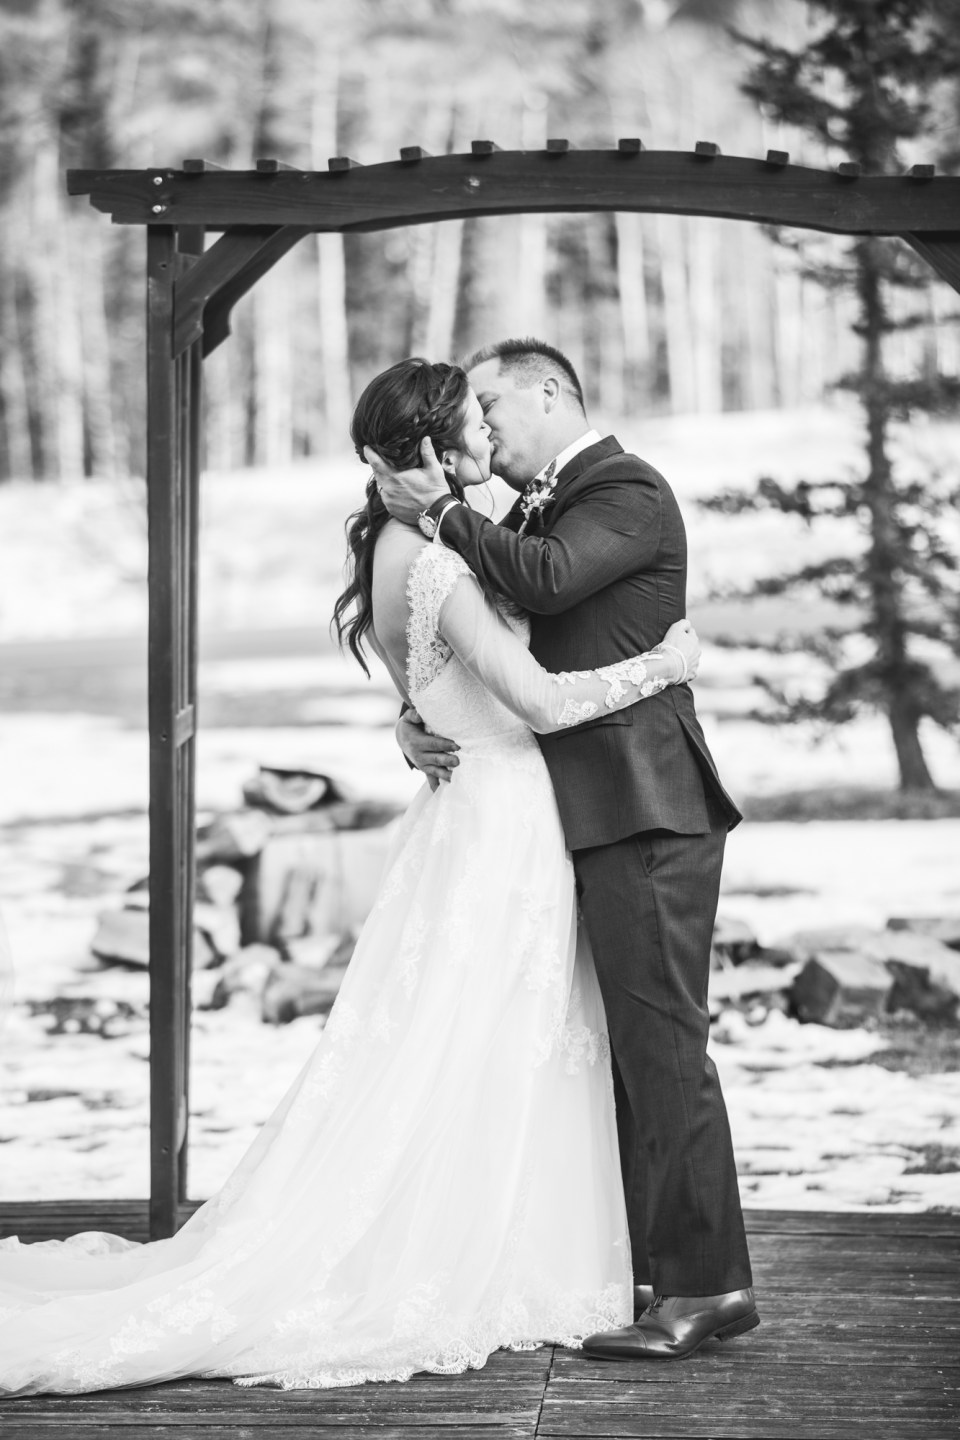 Durango, Colorado Winter Wedding ceremony first kiss as husband and wife, winter bride and groom